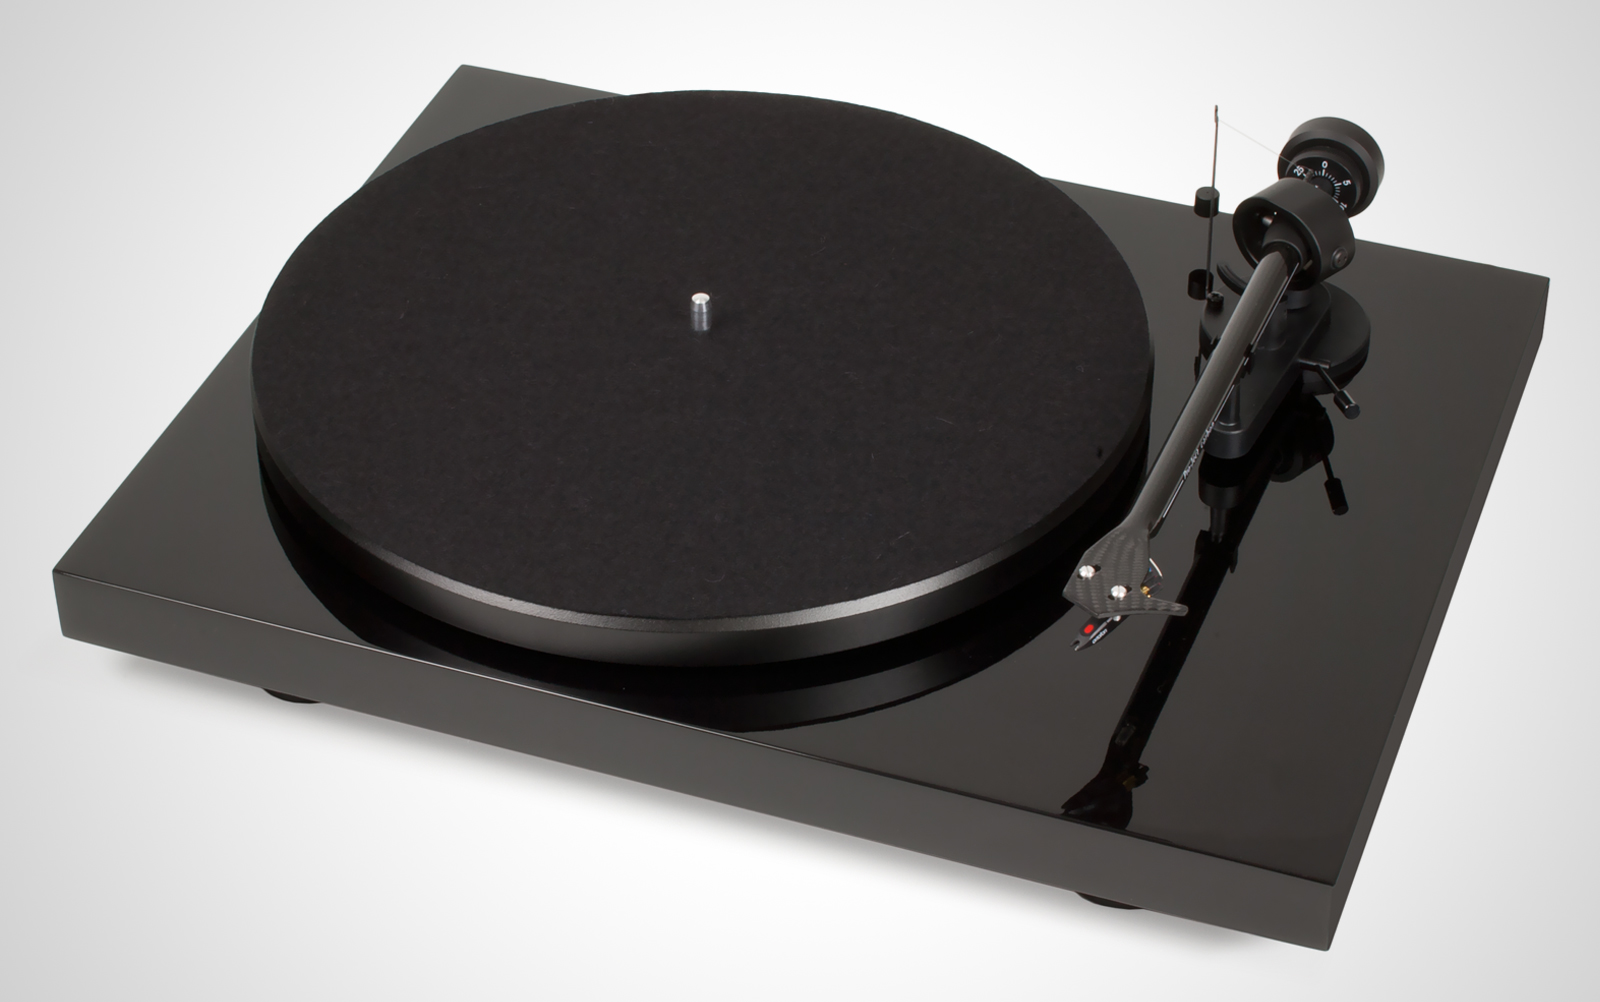 Pro-Ject-Debut-Carbon_01_black